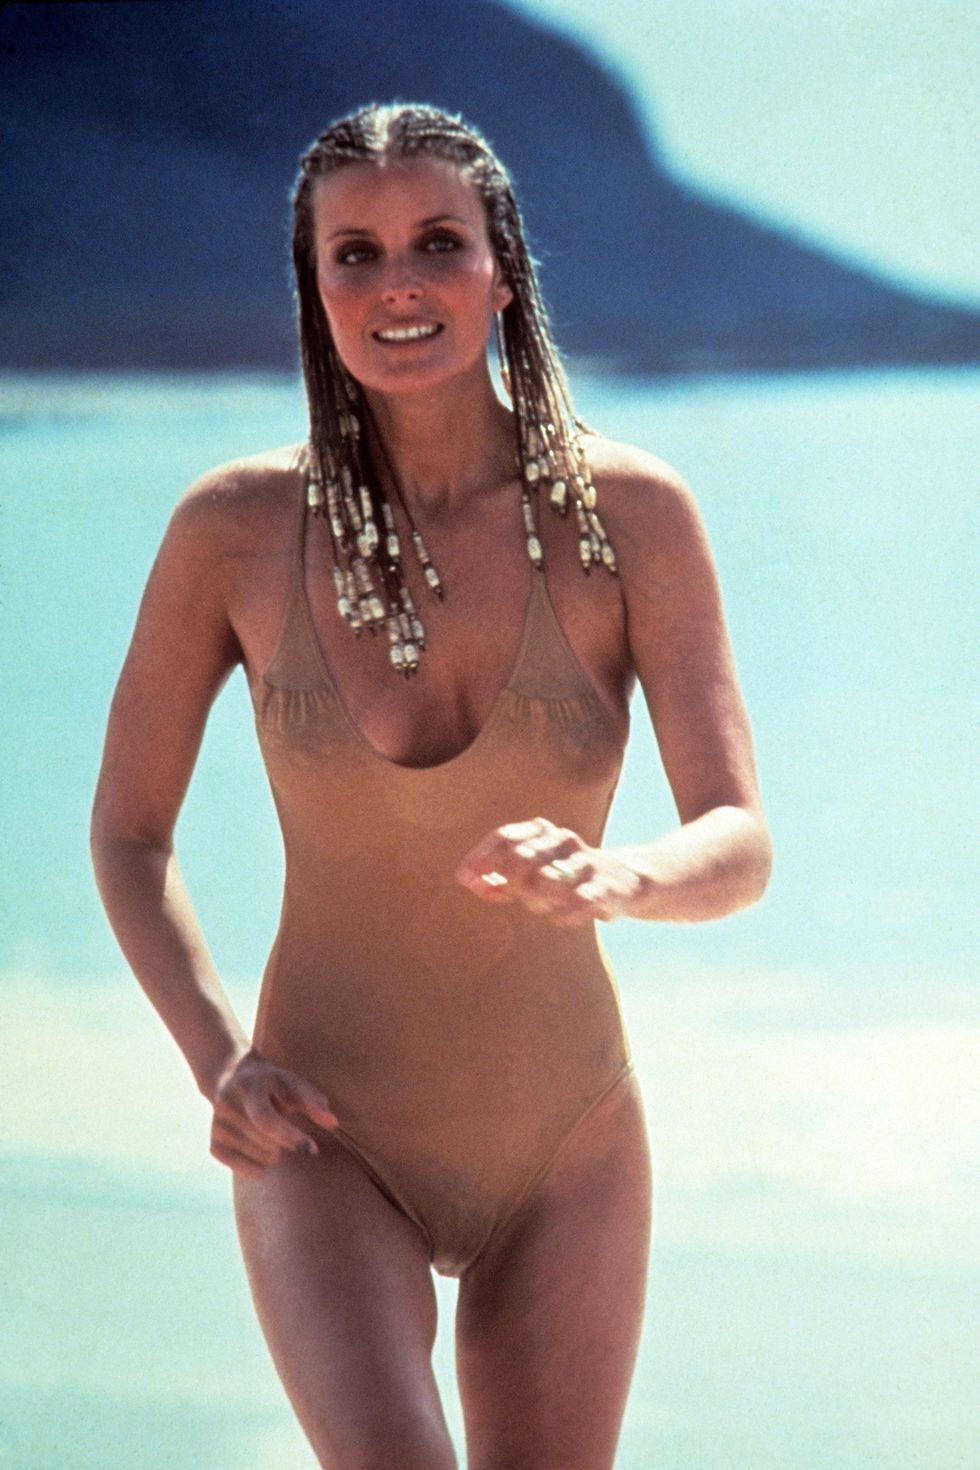 hbz-iconic-swimsuits-hbz-iconic-swimsuits-bo-derek-10-everett-collection